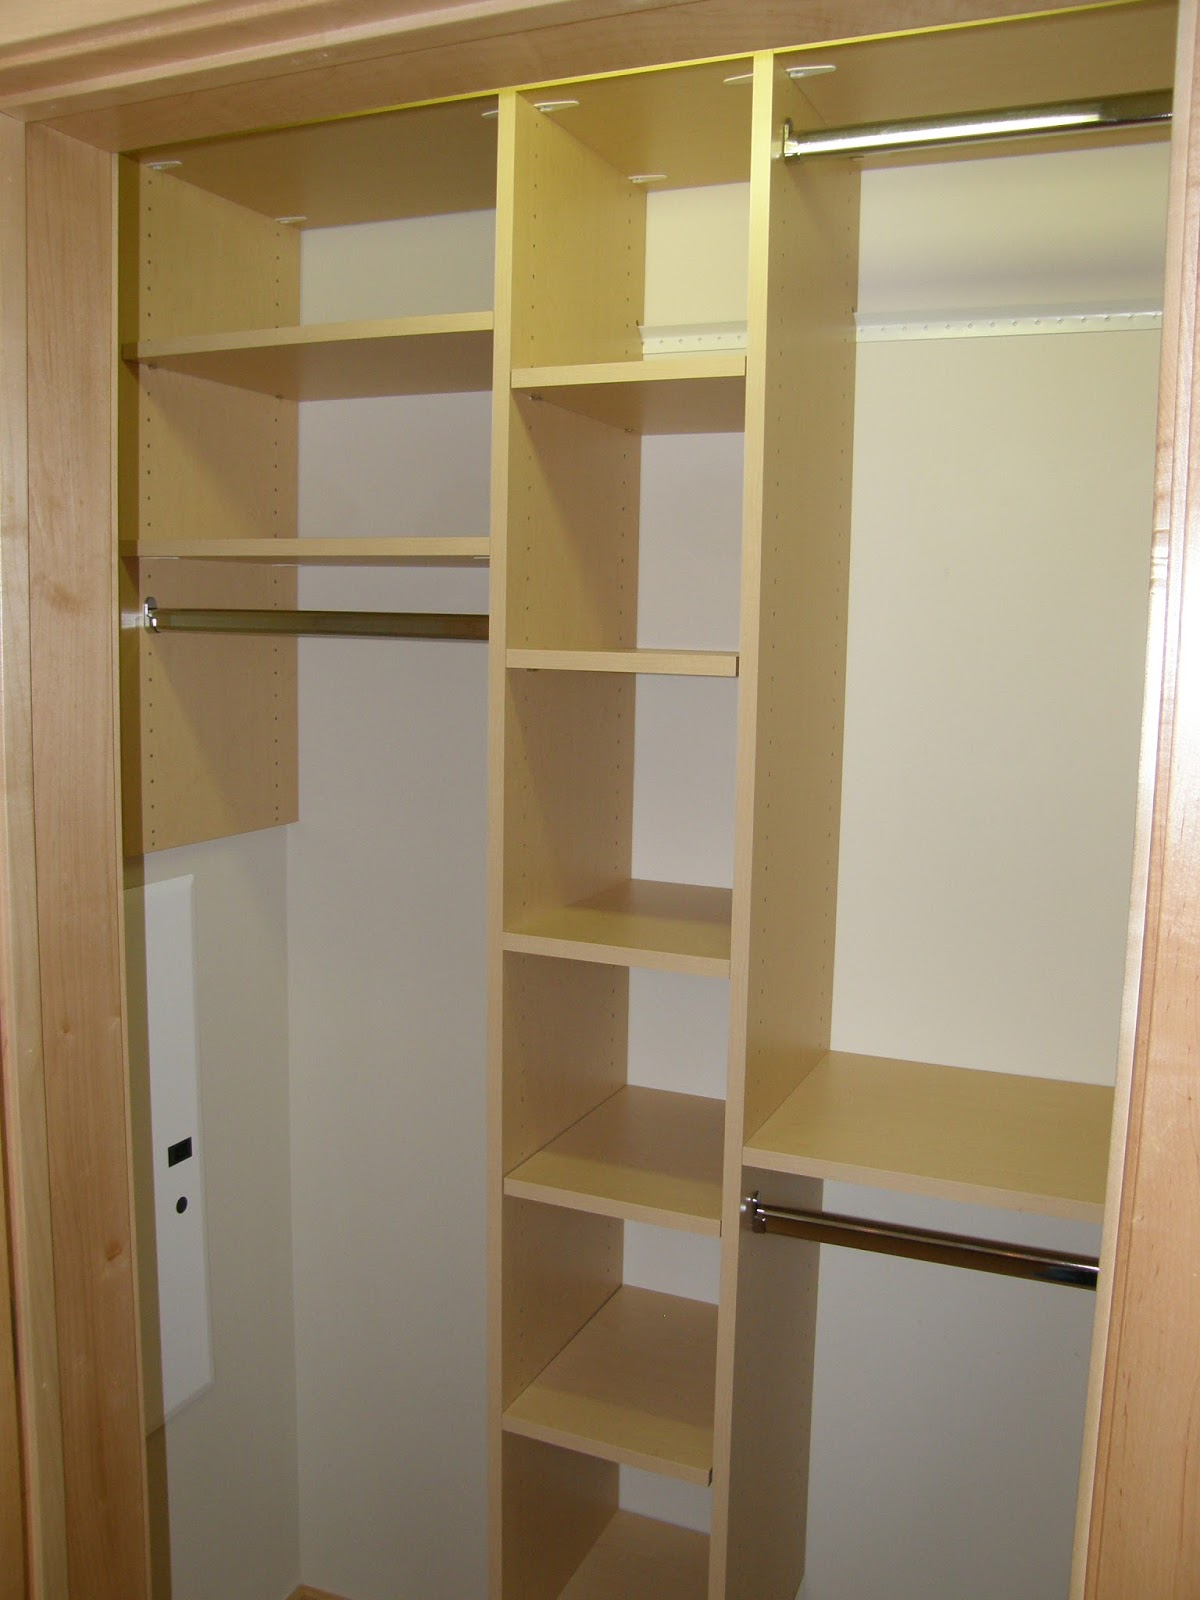 Closets For Life Ideas For A Better Coat Closet